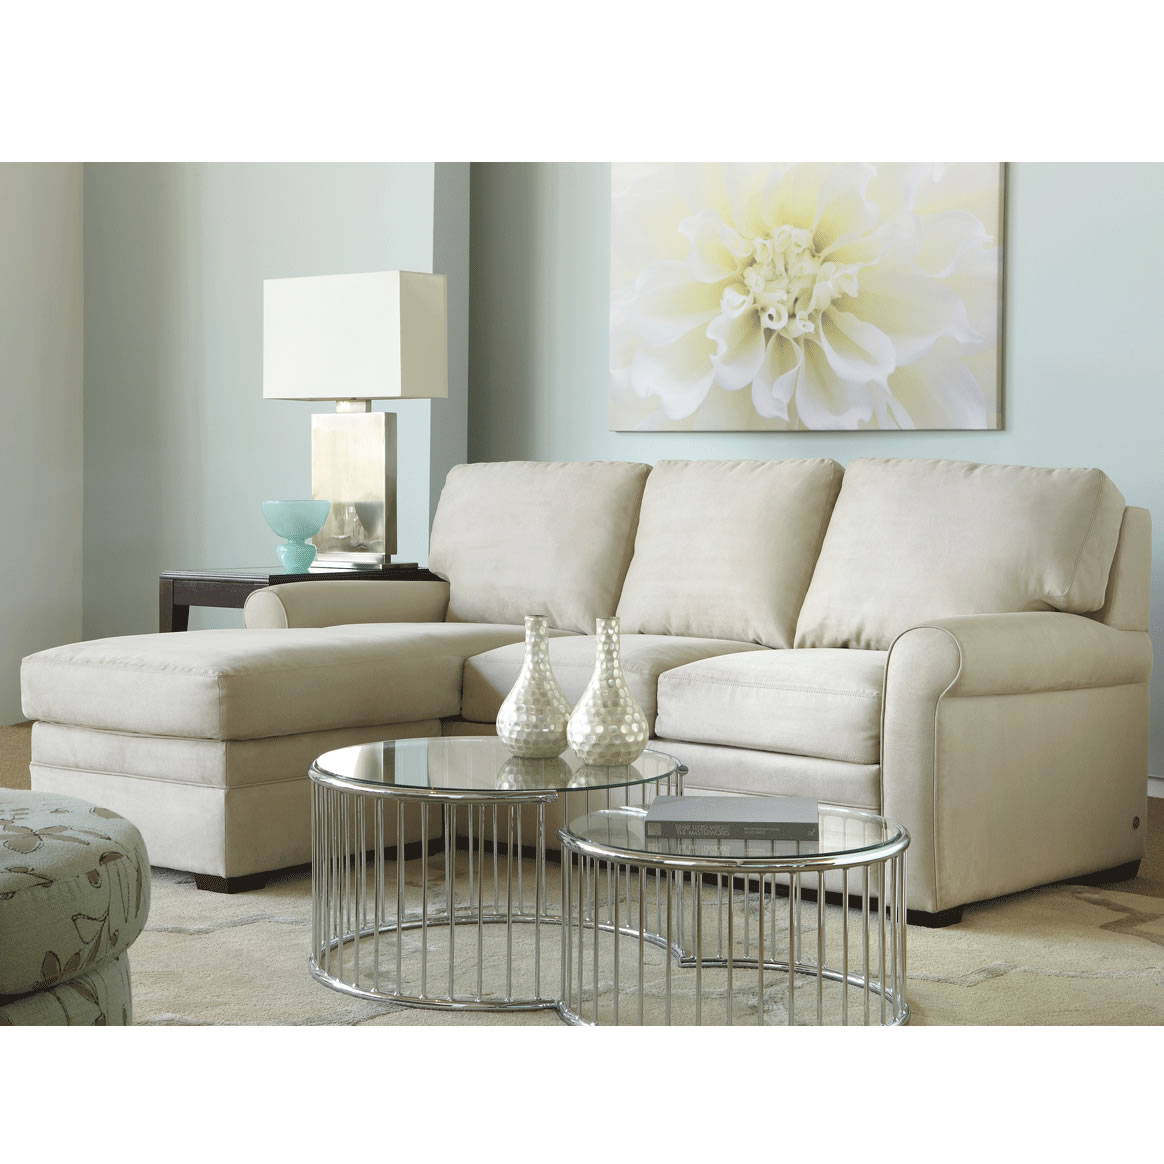 Full Sleeper Sofa Sale